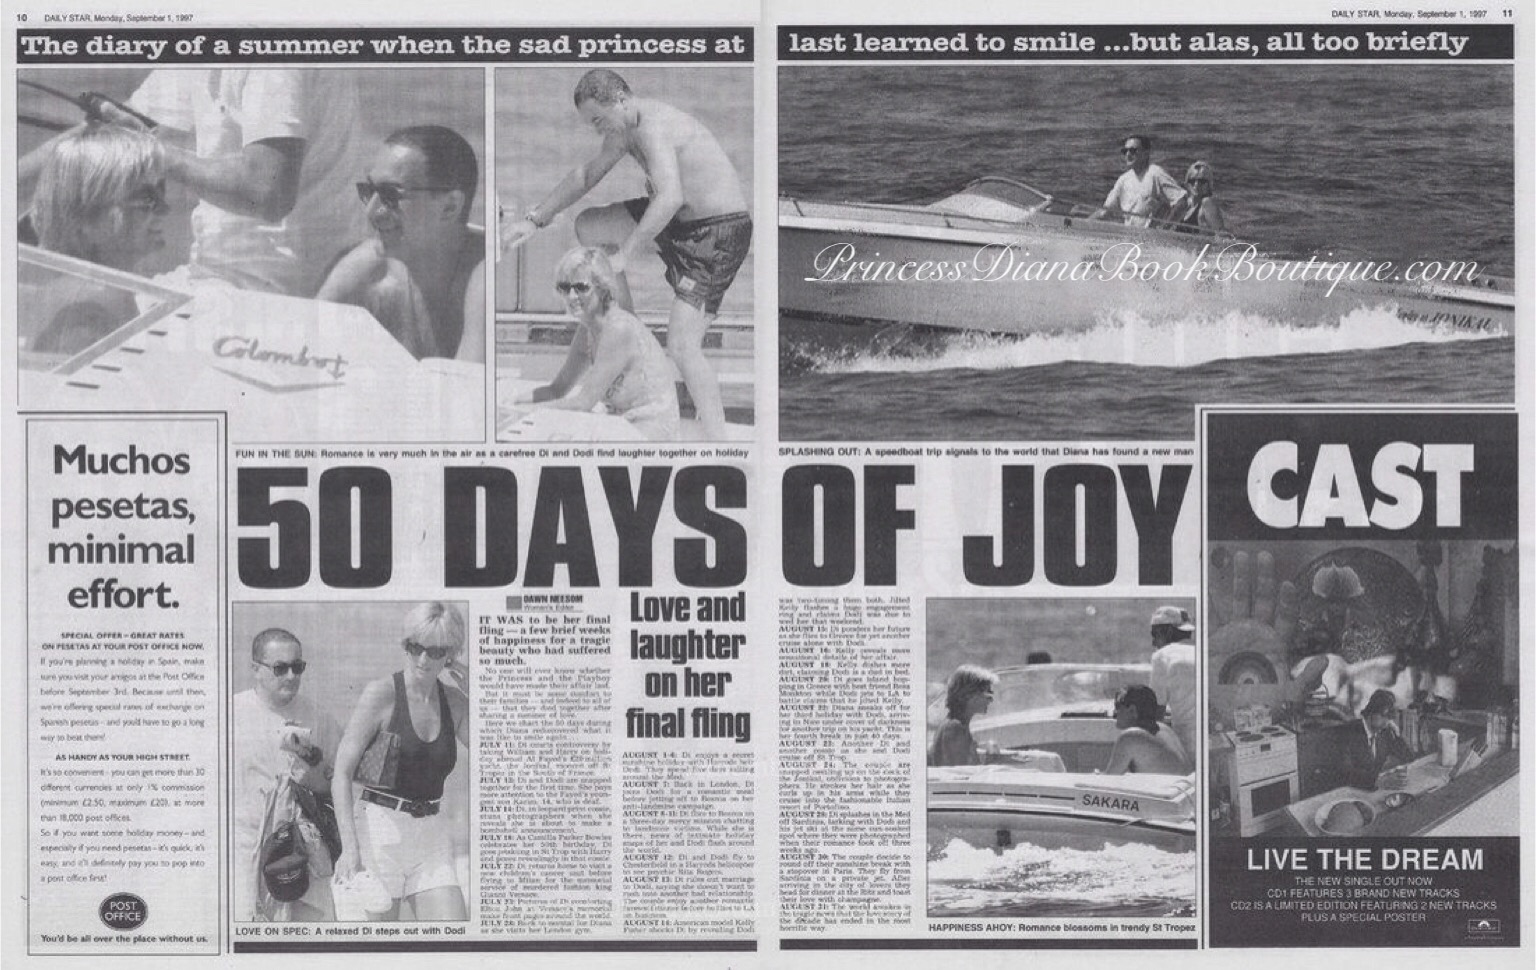 50 DAYS OF JOY: DIARY OF THE LAST SUMMER: Our Princess Diana news article  is from August 1997